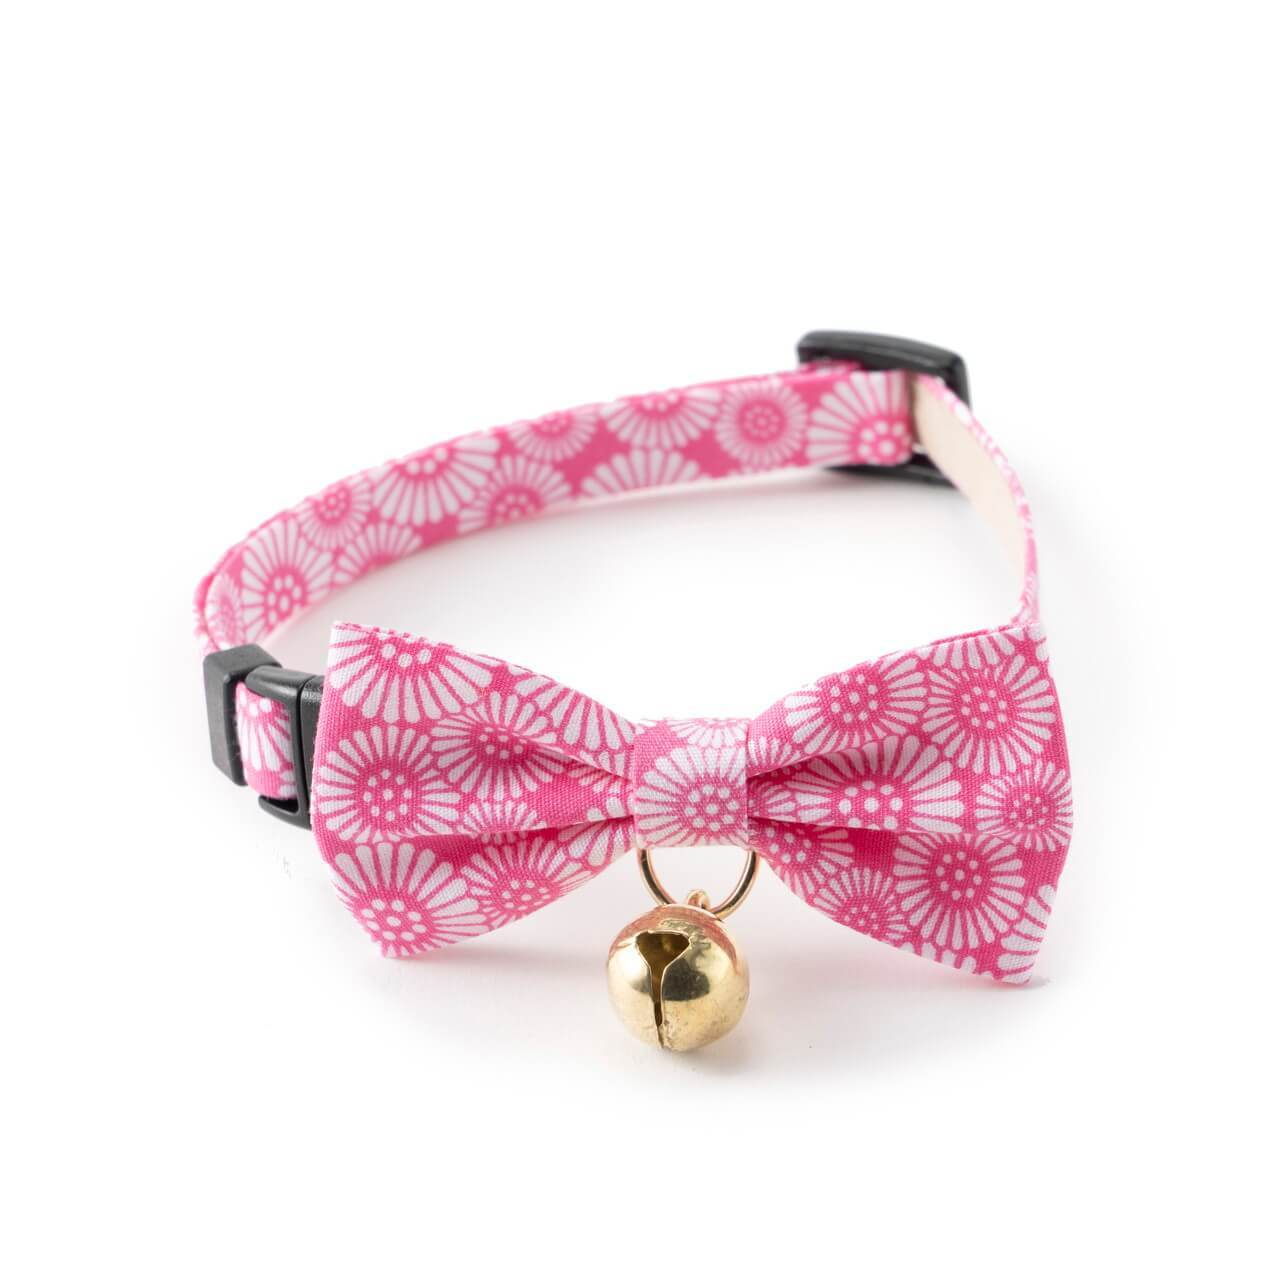 Kiku Ribbon Bow Tie Cat Collar <br>(Pink)